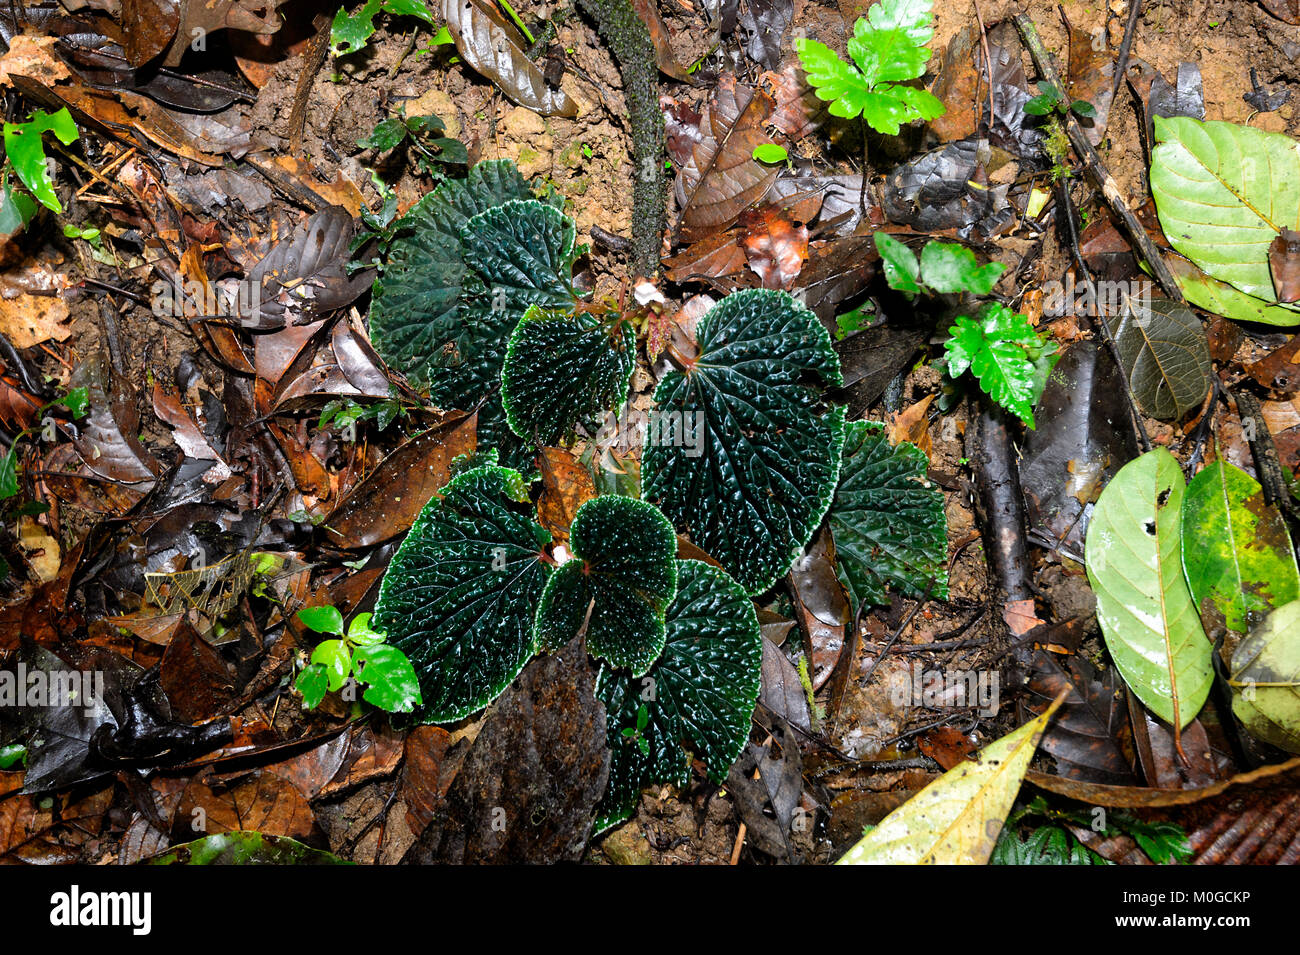 Wild Begonia (Begonia ruthiae) growing on the forest floor of primary rainforest, Danum Valley Conservation Area, - Stock Image